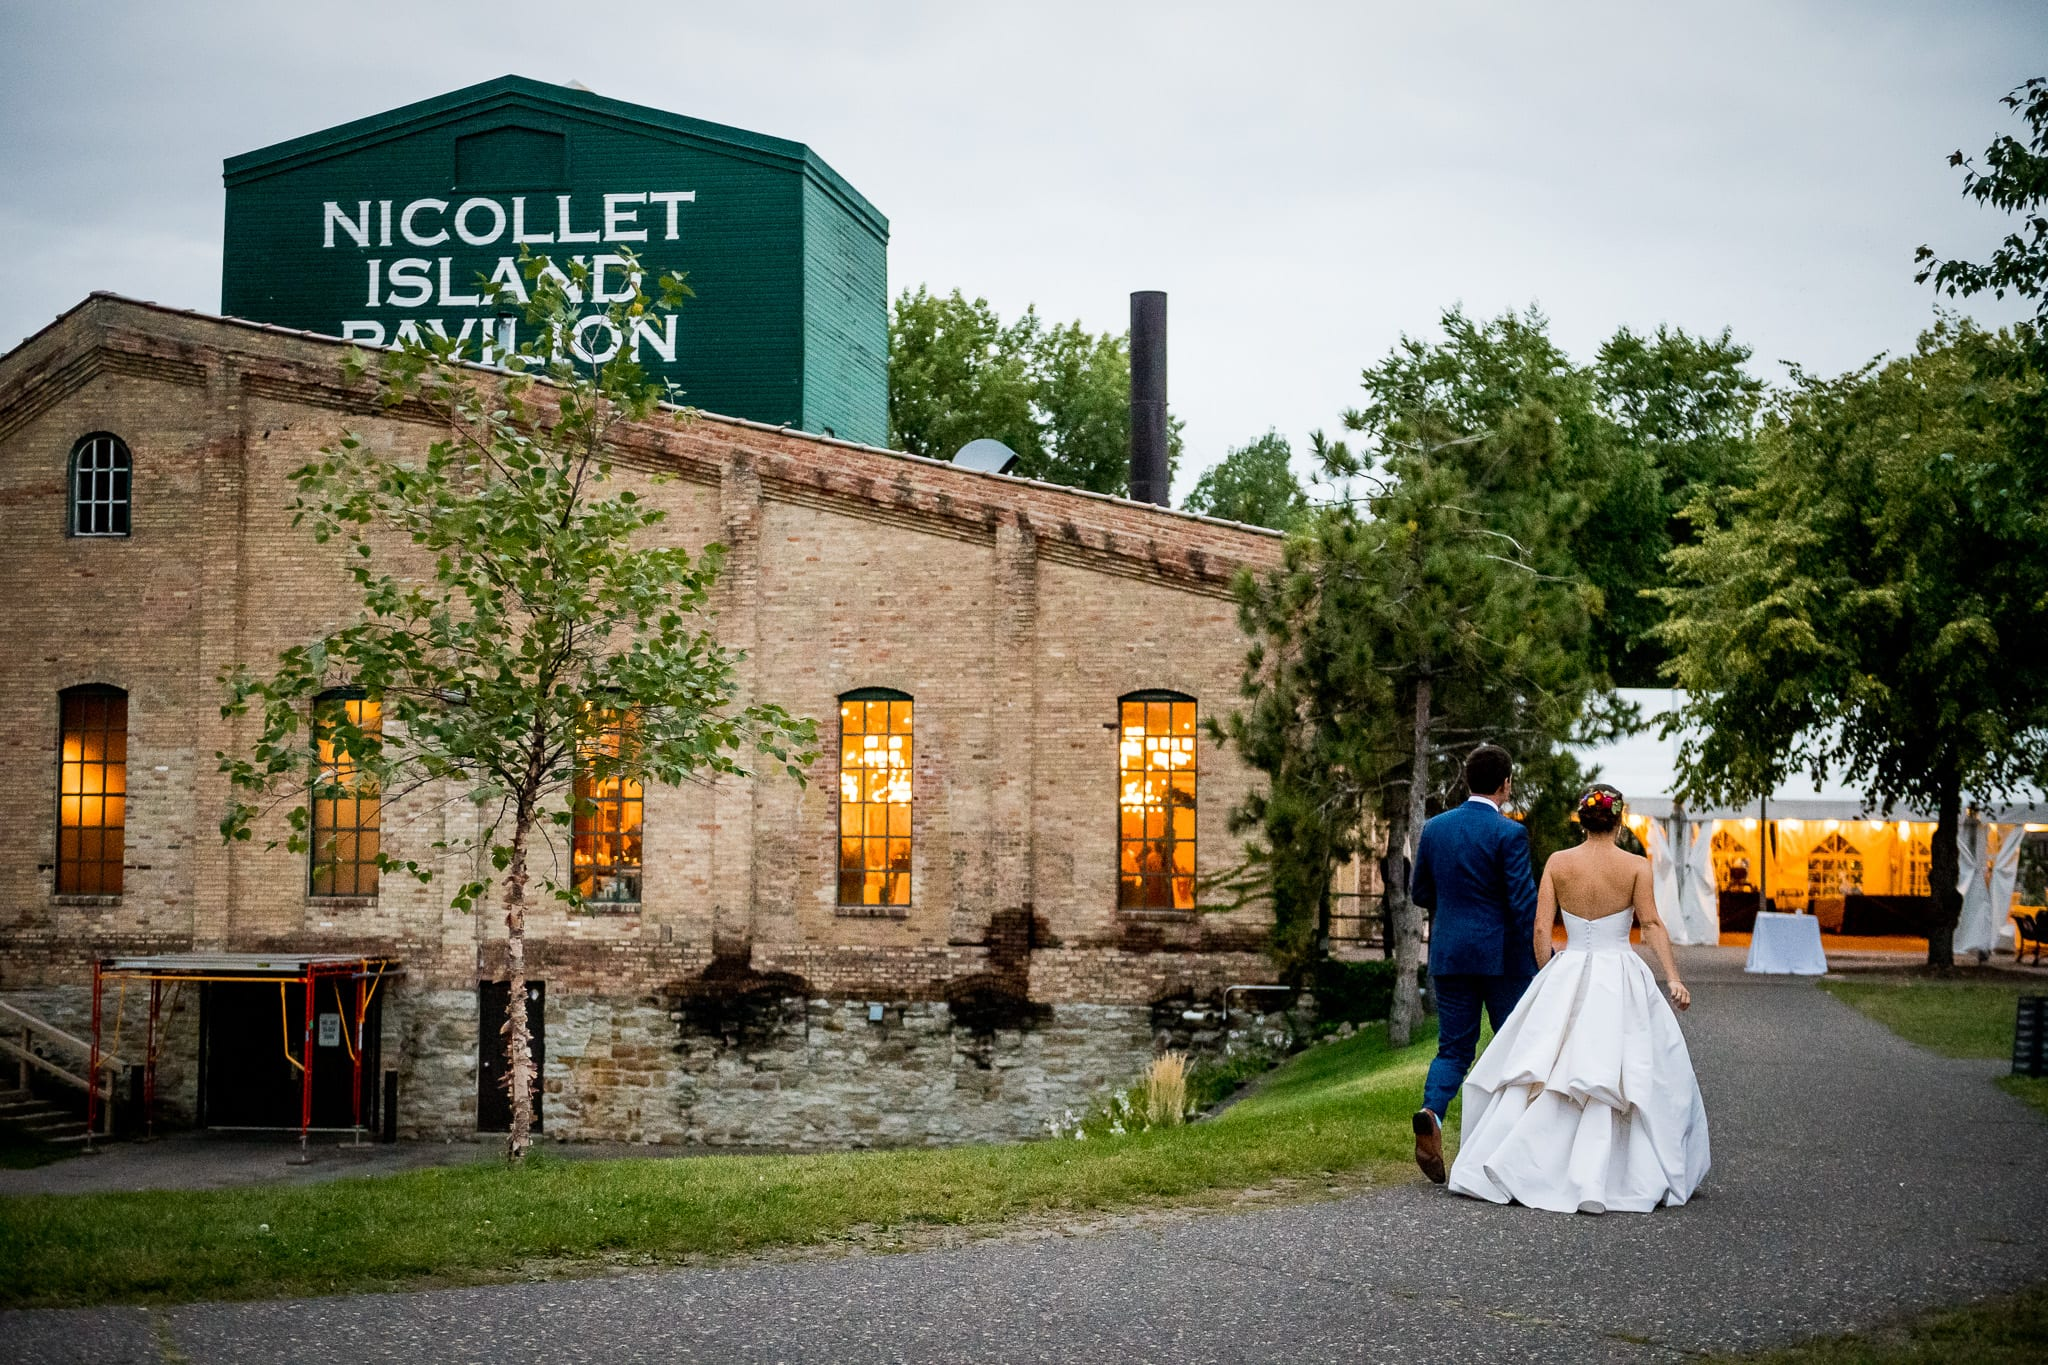 Exterior shot of the Nicollet Island Pavilion during a summer wedding with the bride and groom walking along the path